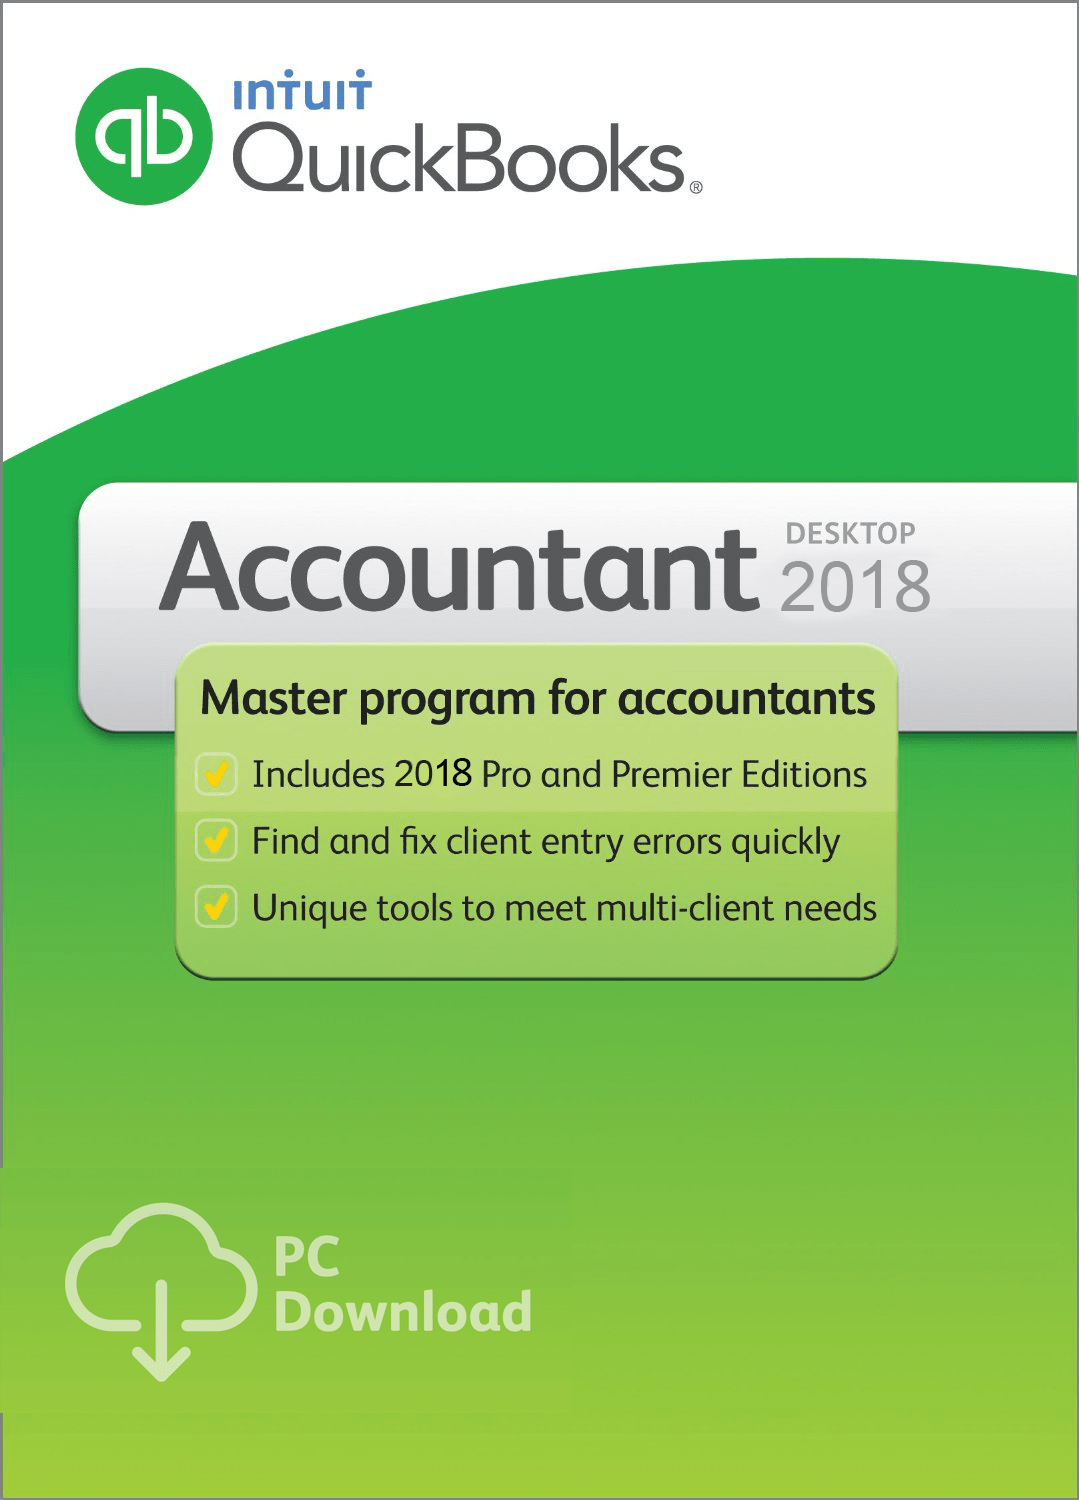 QuickBooks Accountant Edition User License Downloadable - Download quickbooks products